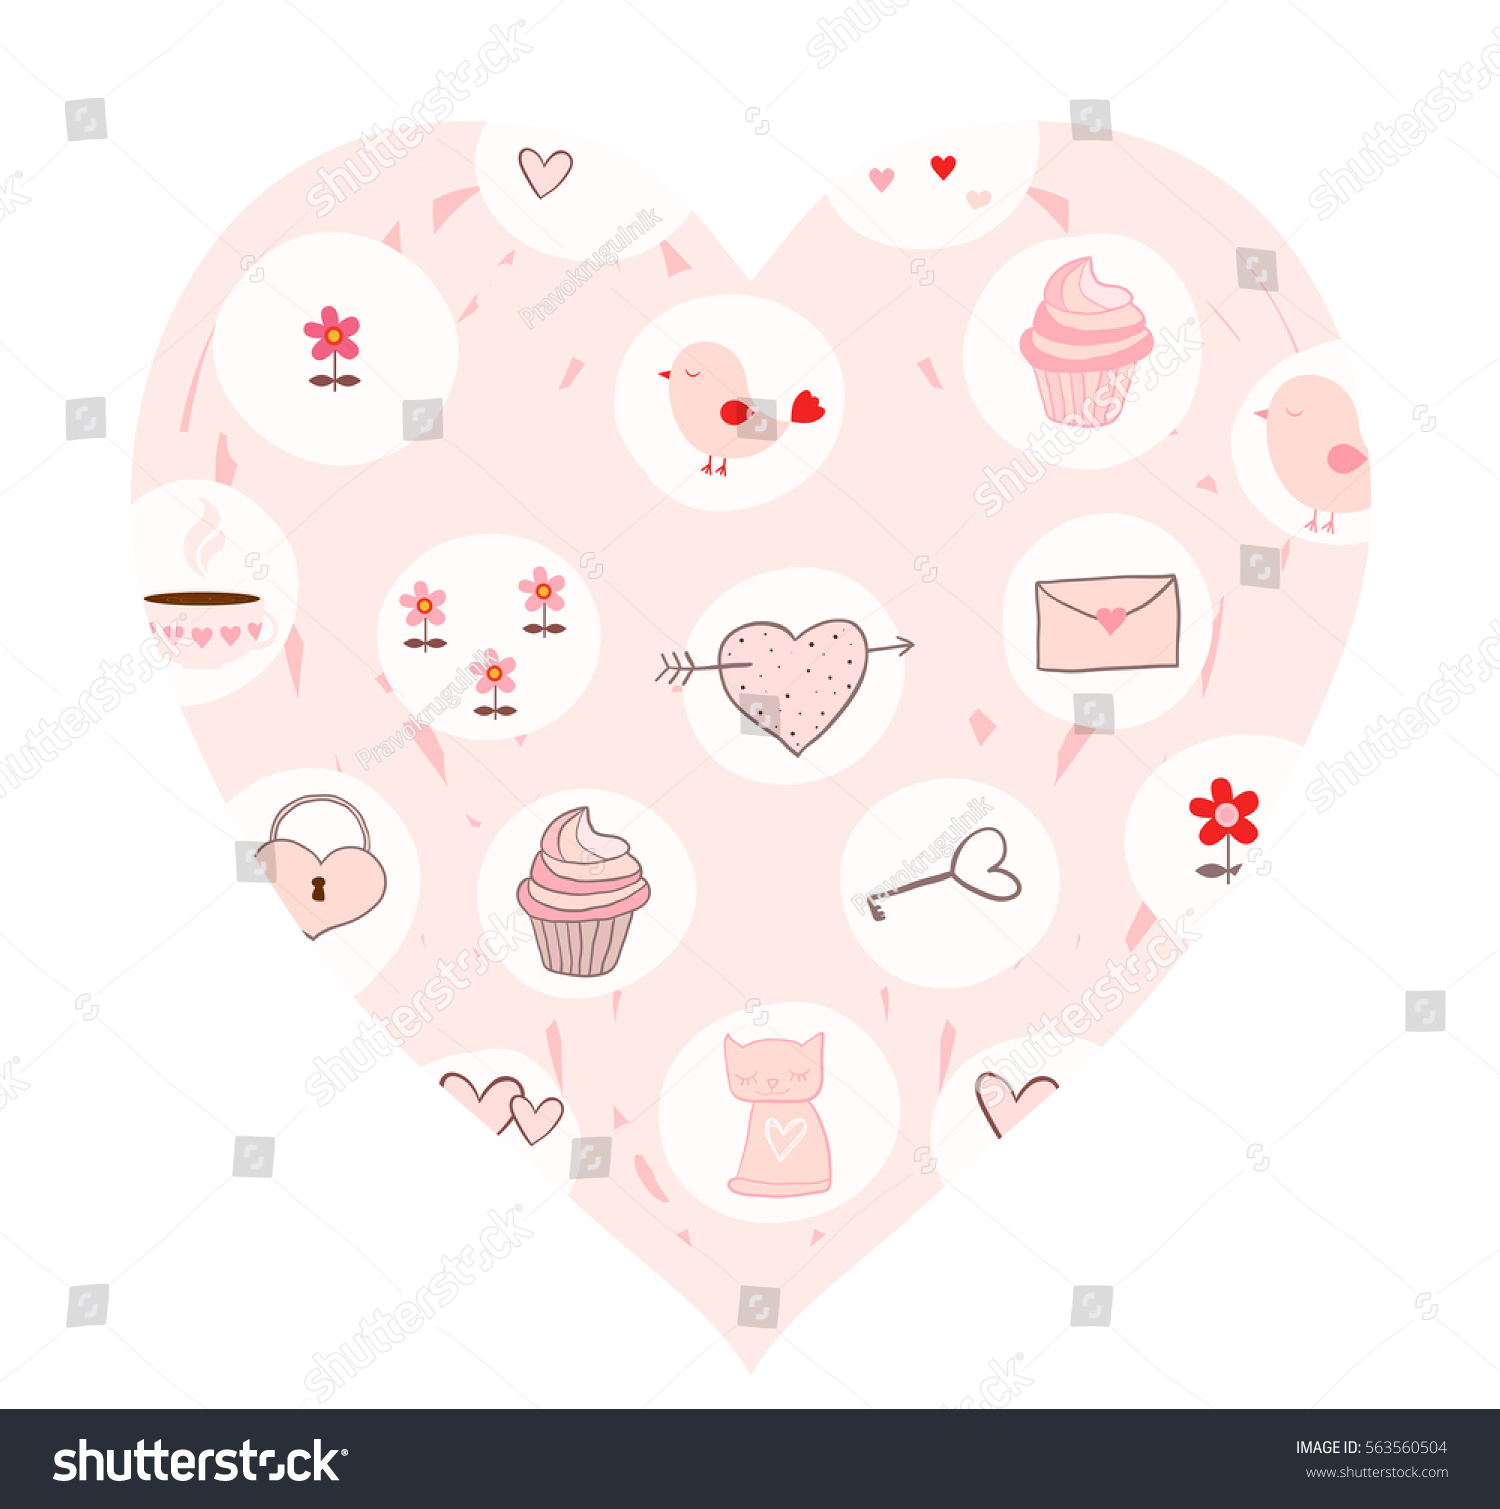 Pink Vector Heart Card Cute Drawings Stock Vector Royalty Free